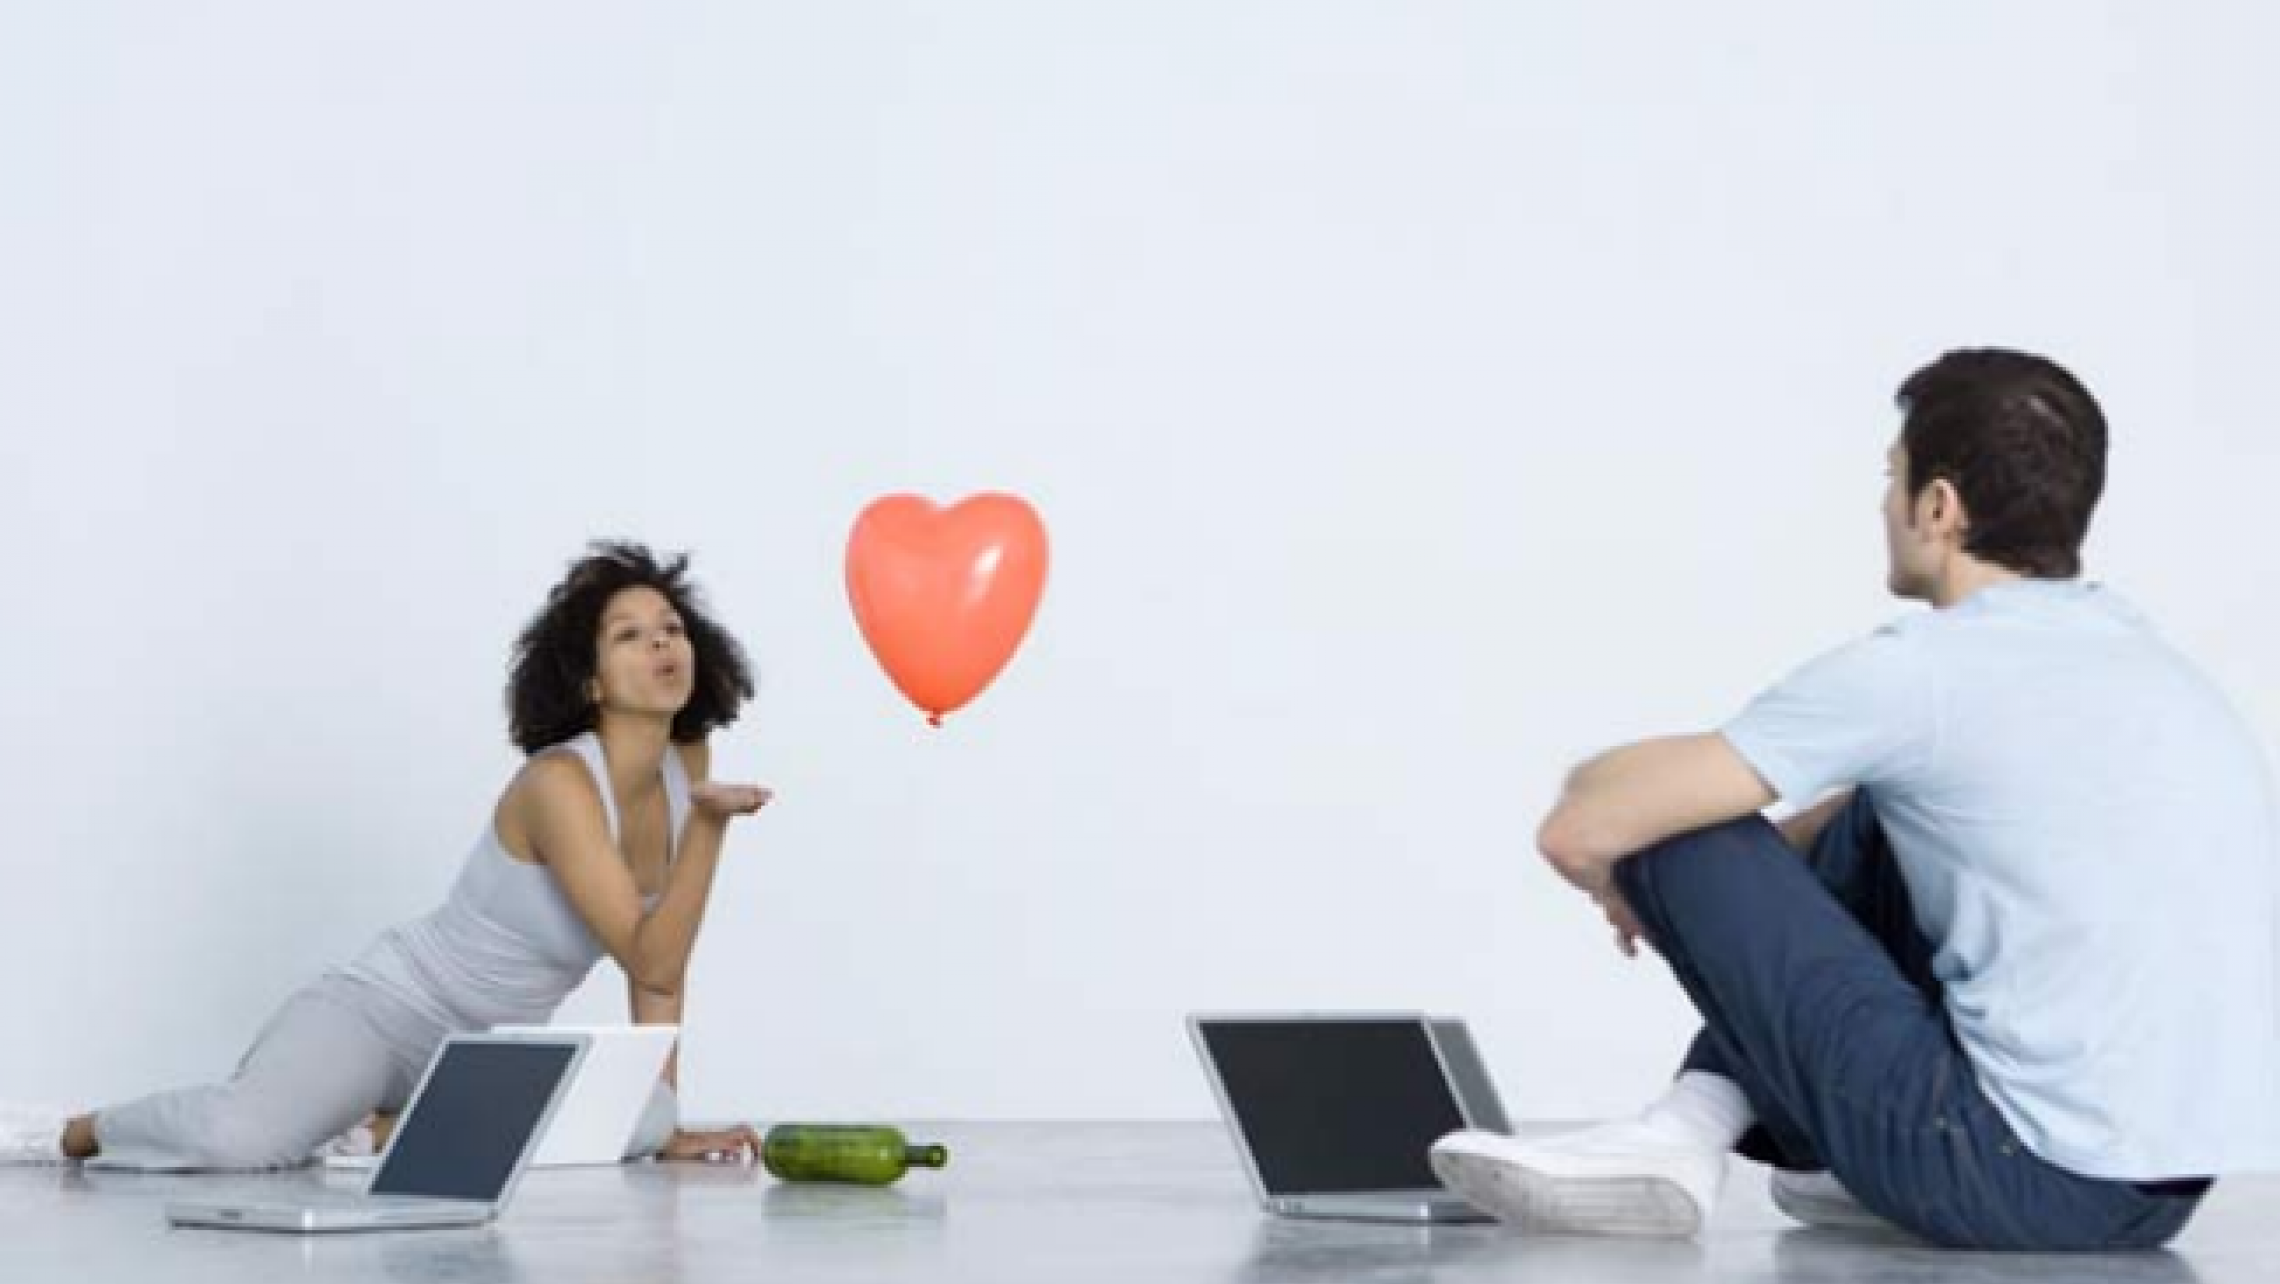 Computer-mediated communication and online dating